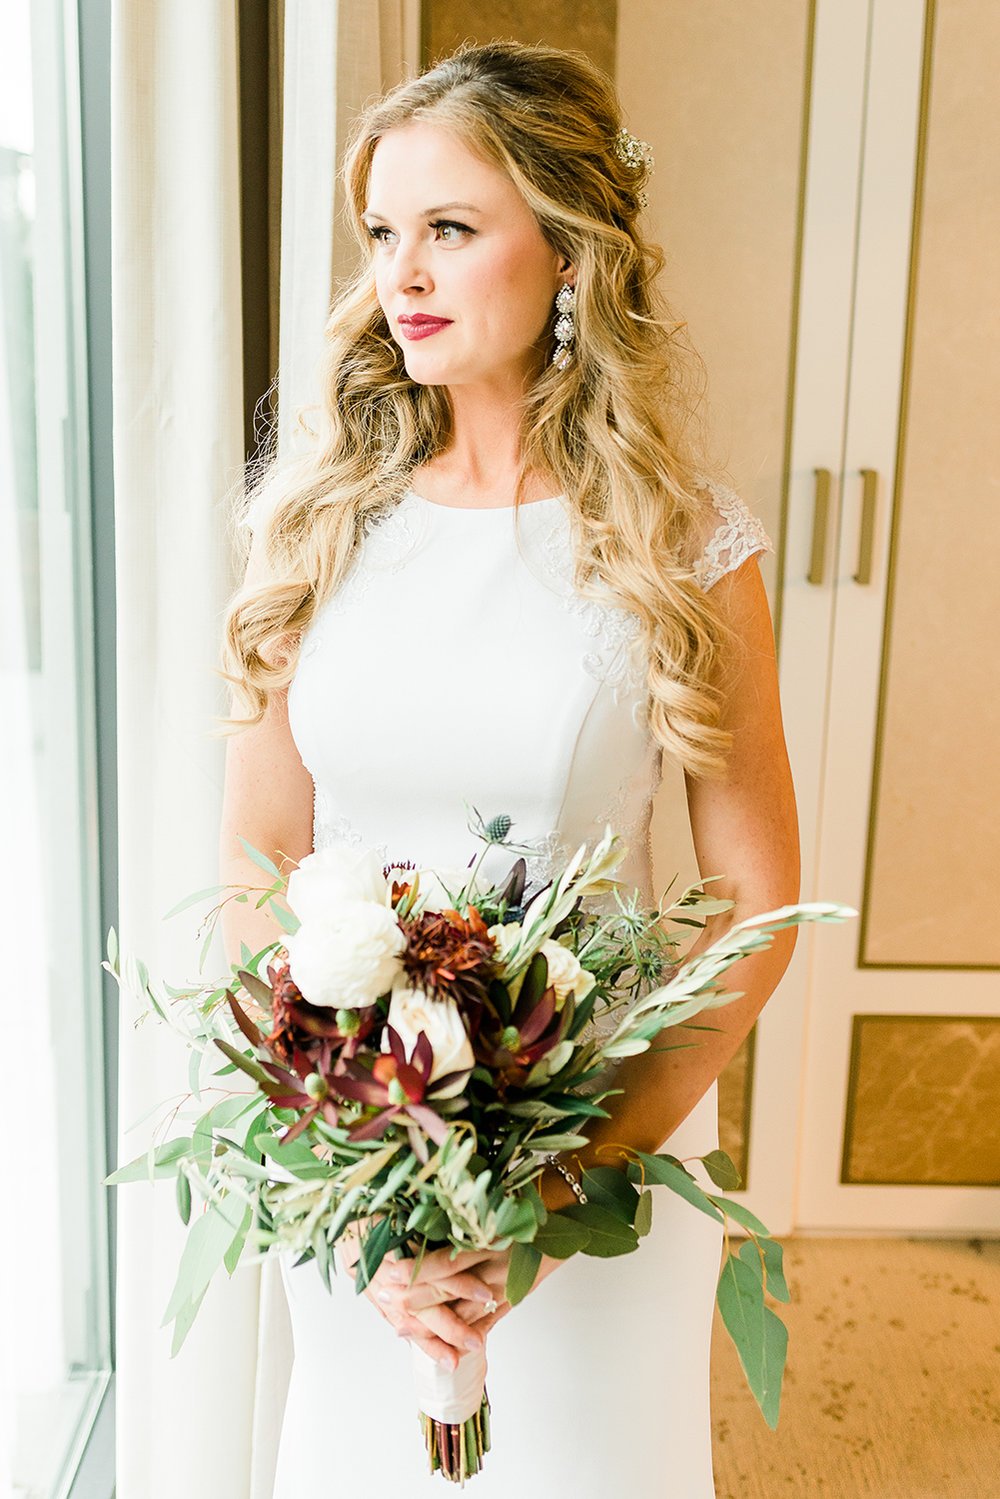 halcyon-hotel-wedding-denver-wedding-photographer-10.jpg